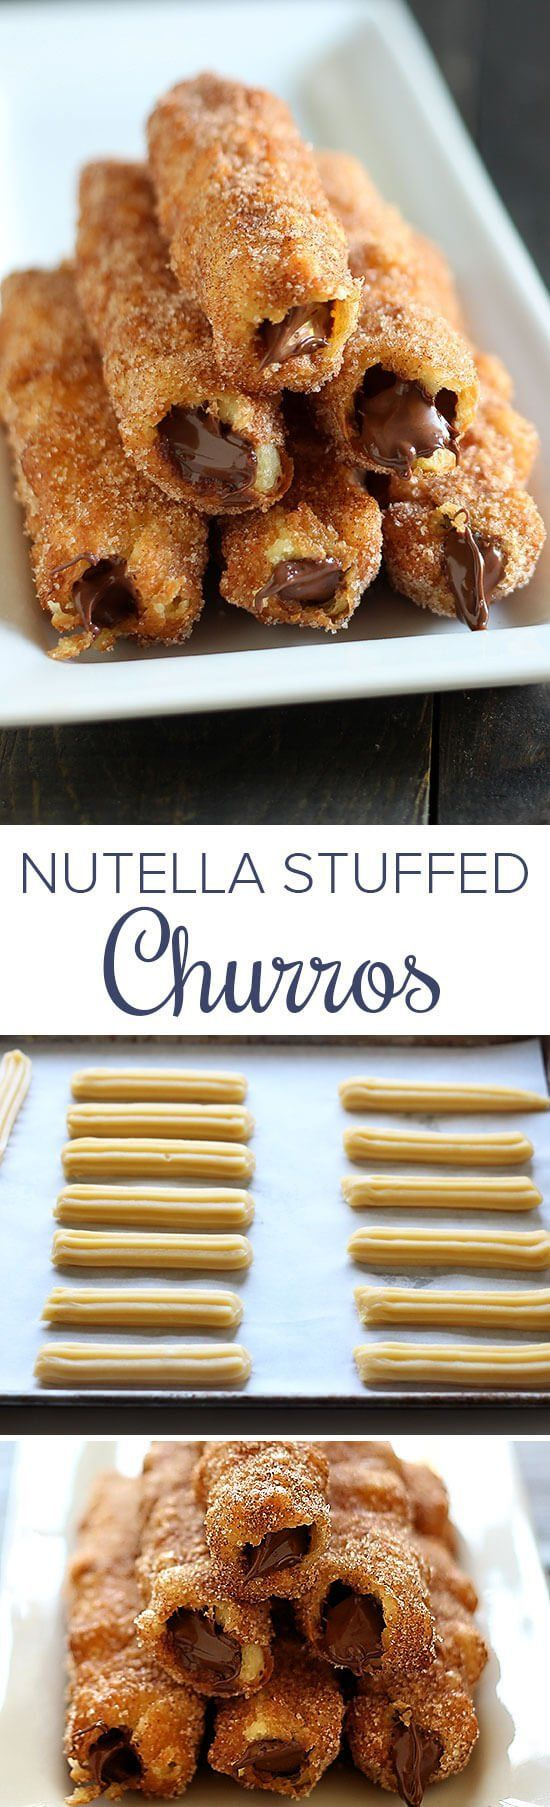 NUTELLA STUFFED CHURROS feature a homemade pastry that is deep fried until golden, coated in sweet cinnamon sugar, and stuffed with Nutella. TO DIE FOR!